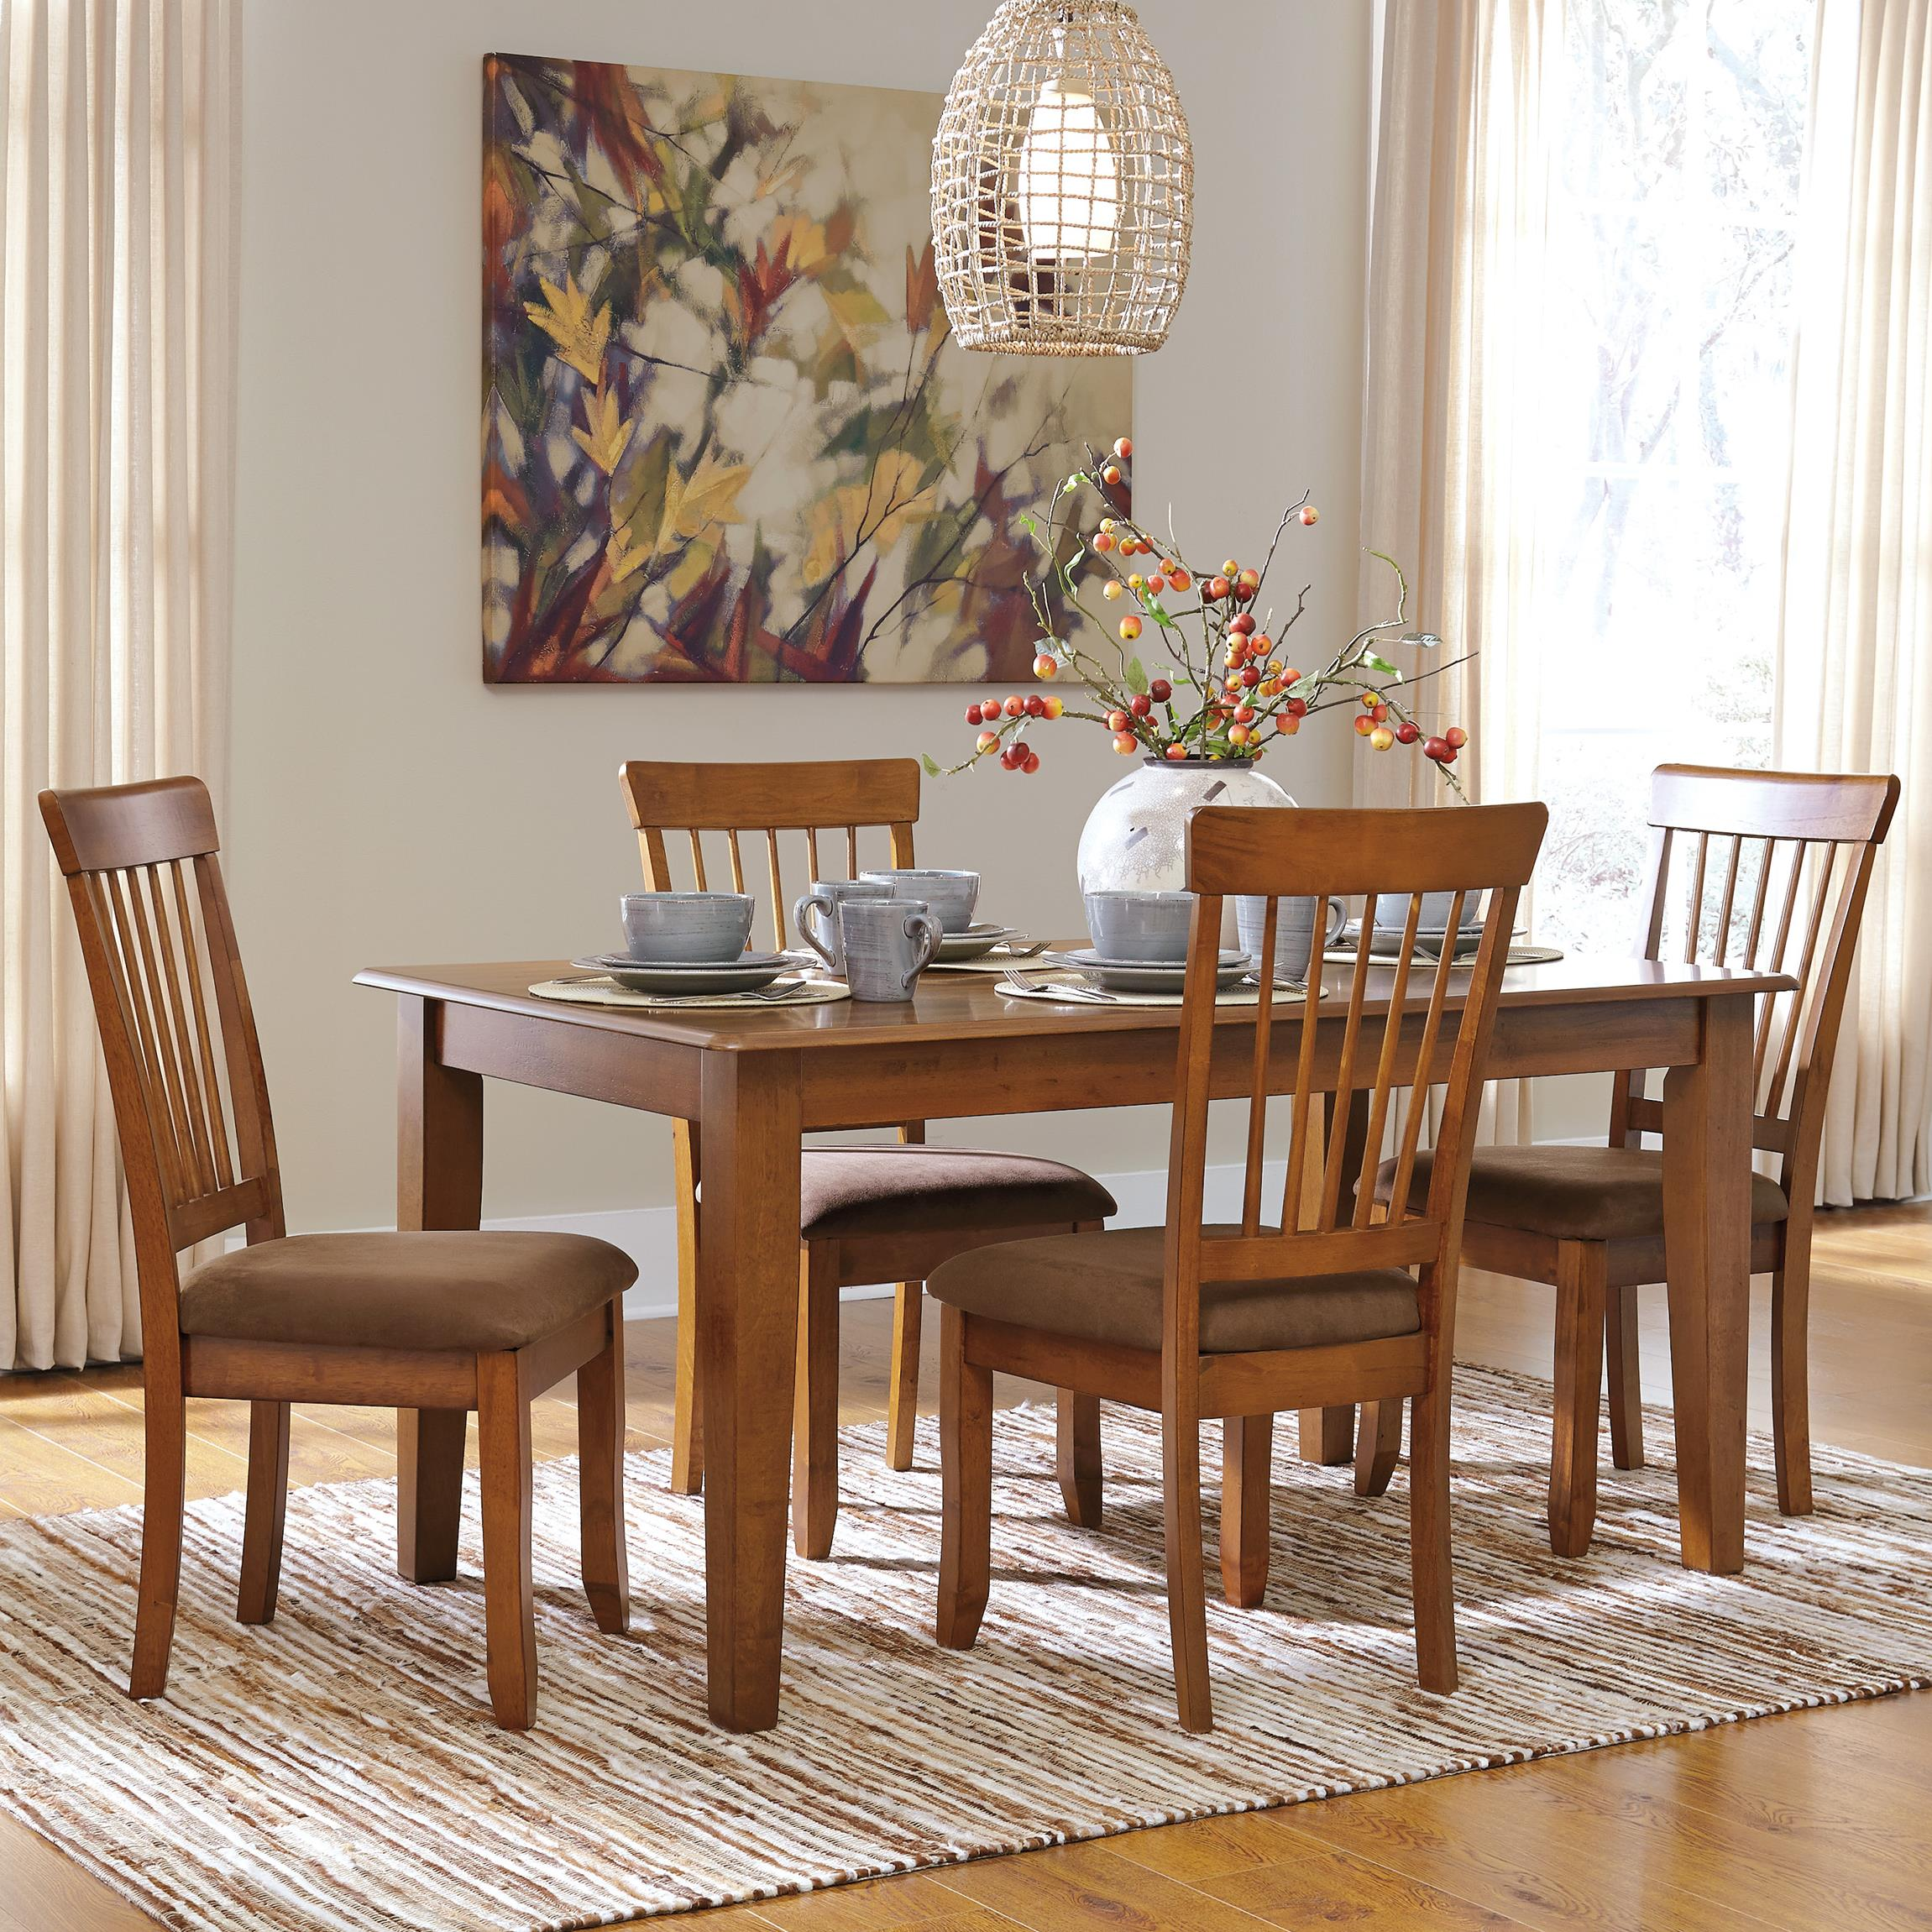 Ashley Furniture Table And Chairs Ashley Furniture Berringer 5 Piece 36x60 Table And Chair Set